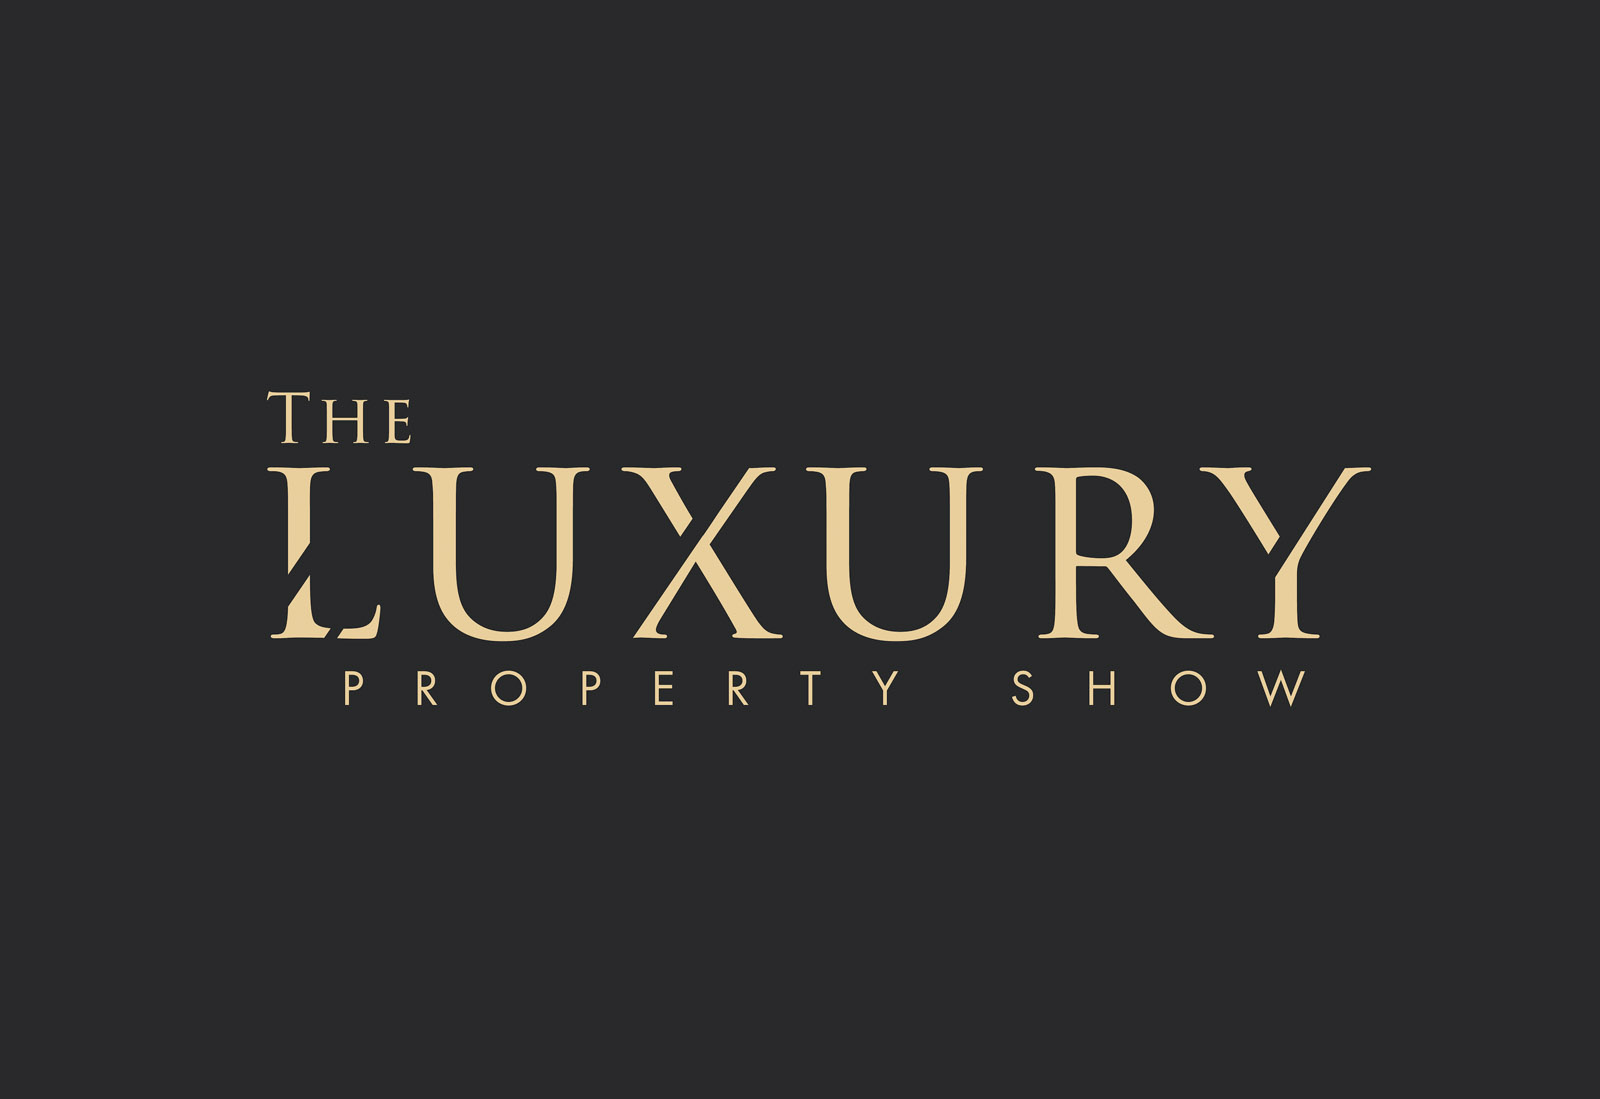 The Luxury Property Show - Branding and Identity Design Project London